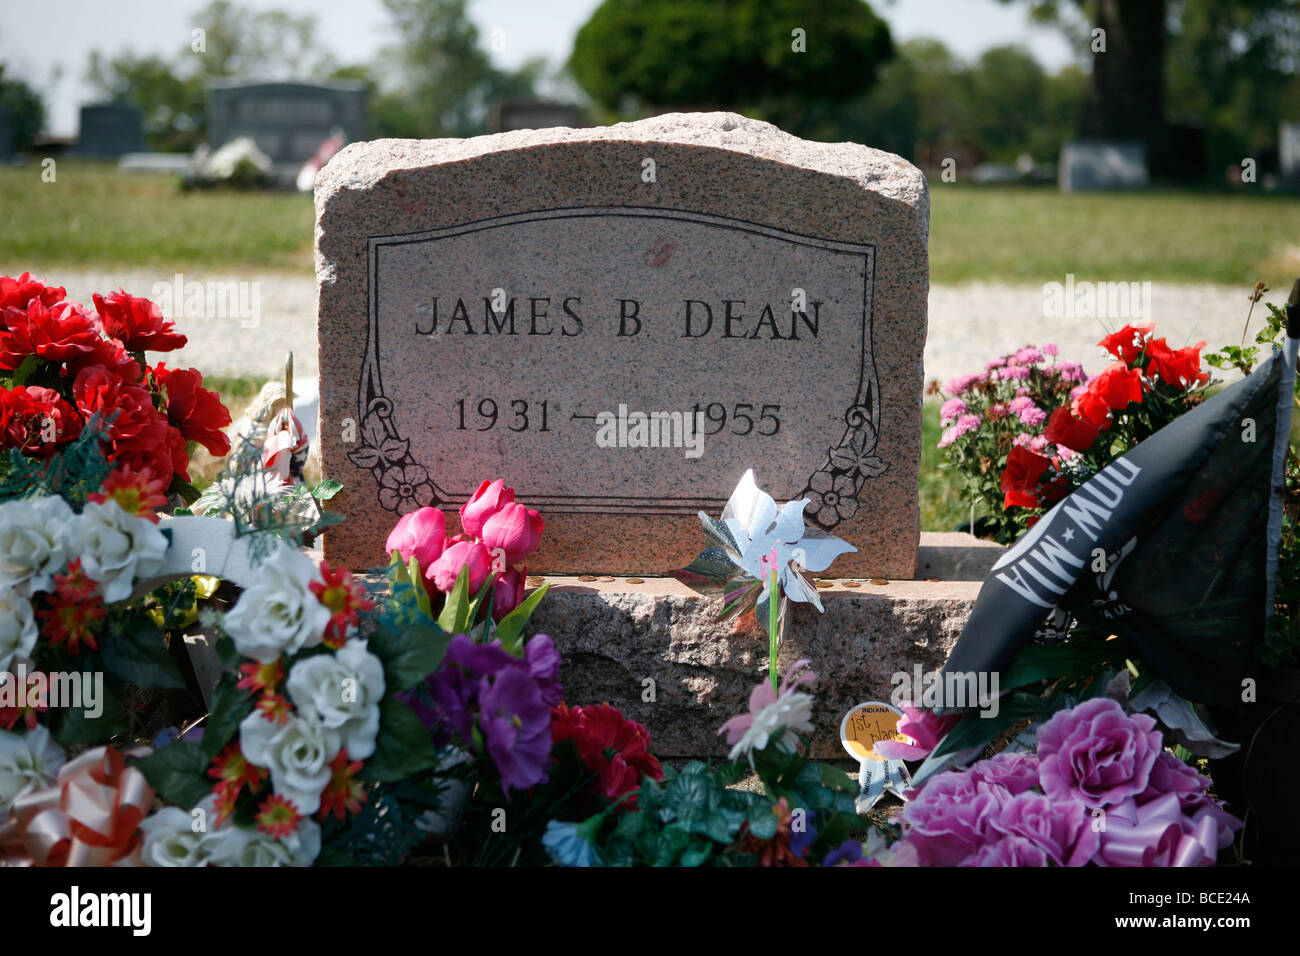 James Dean grave at the Park Cemetery Fairmont Indiana Stock Photo